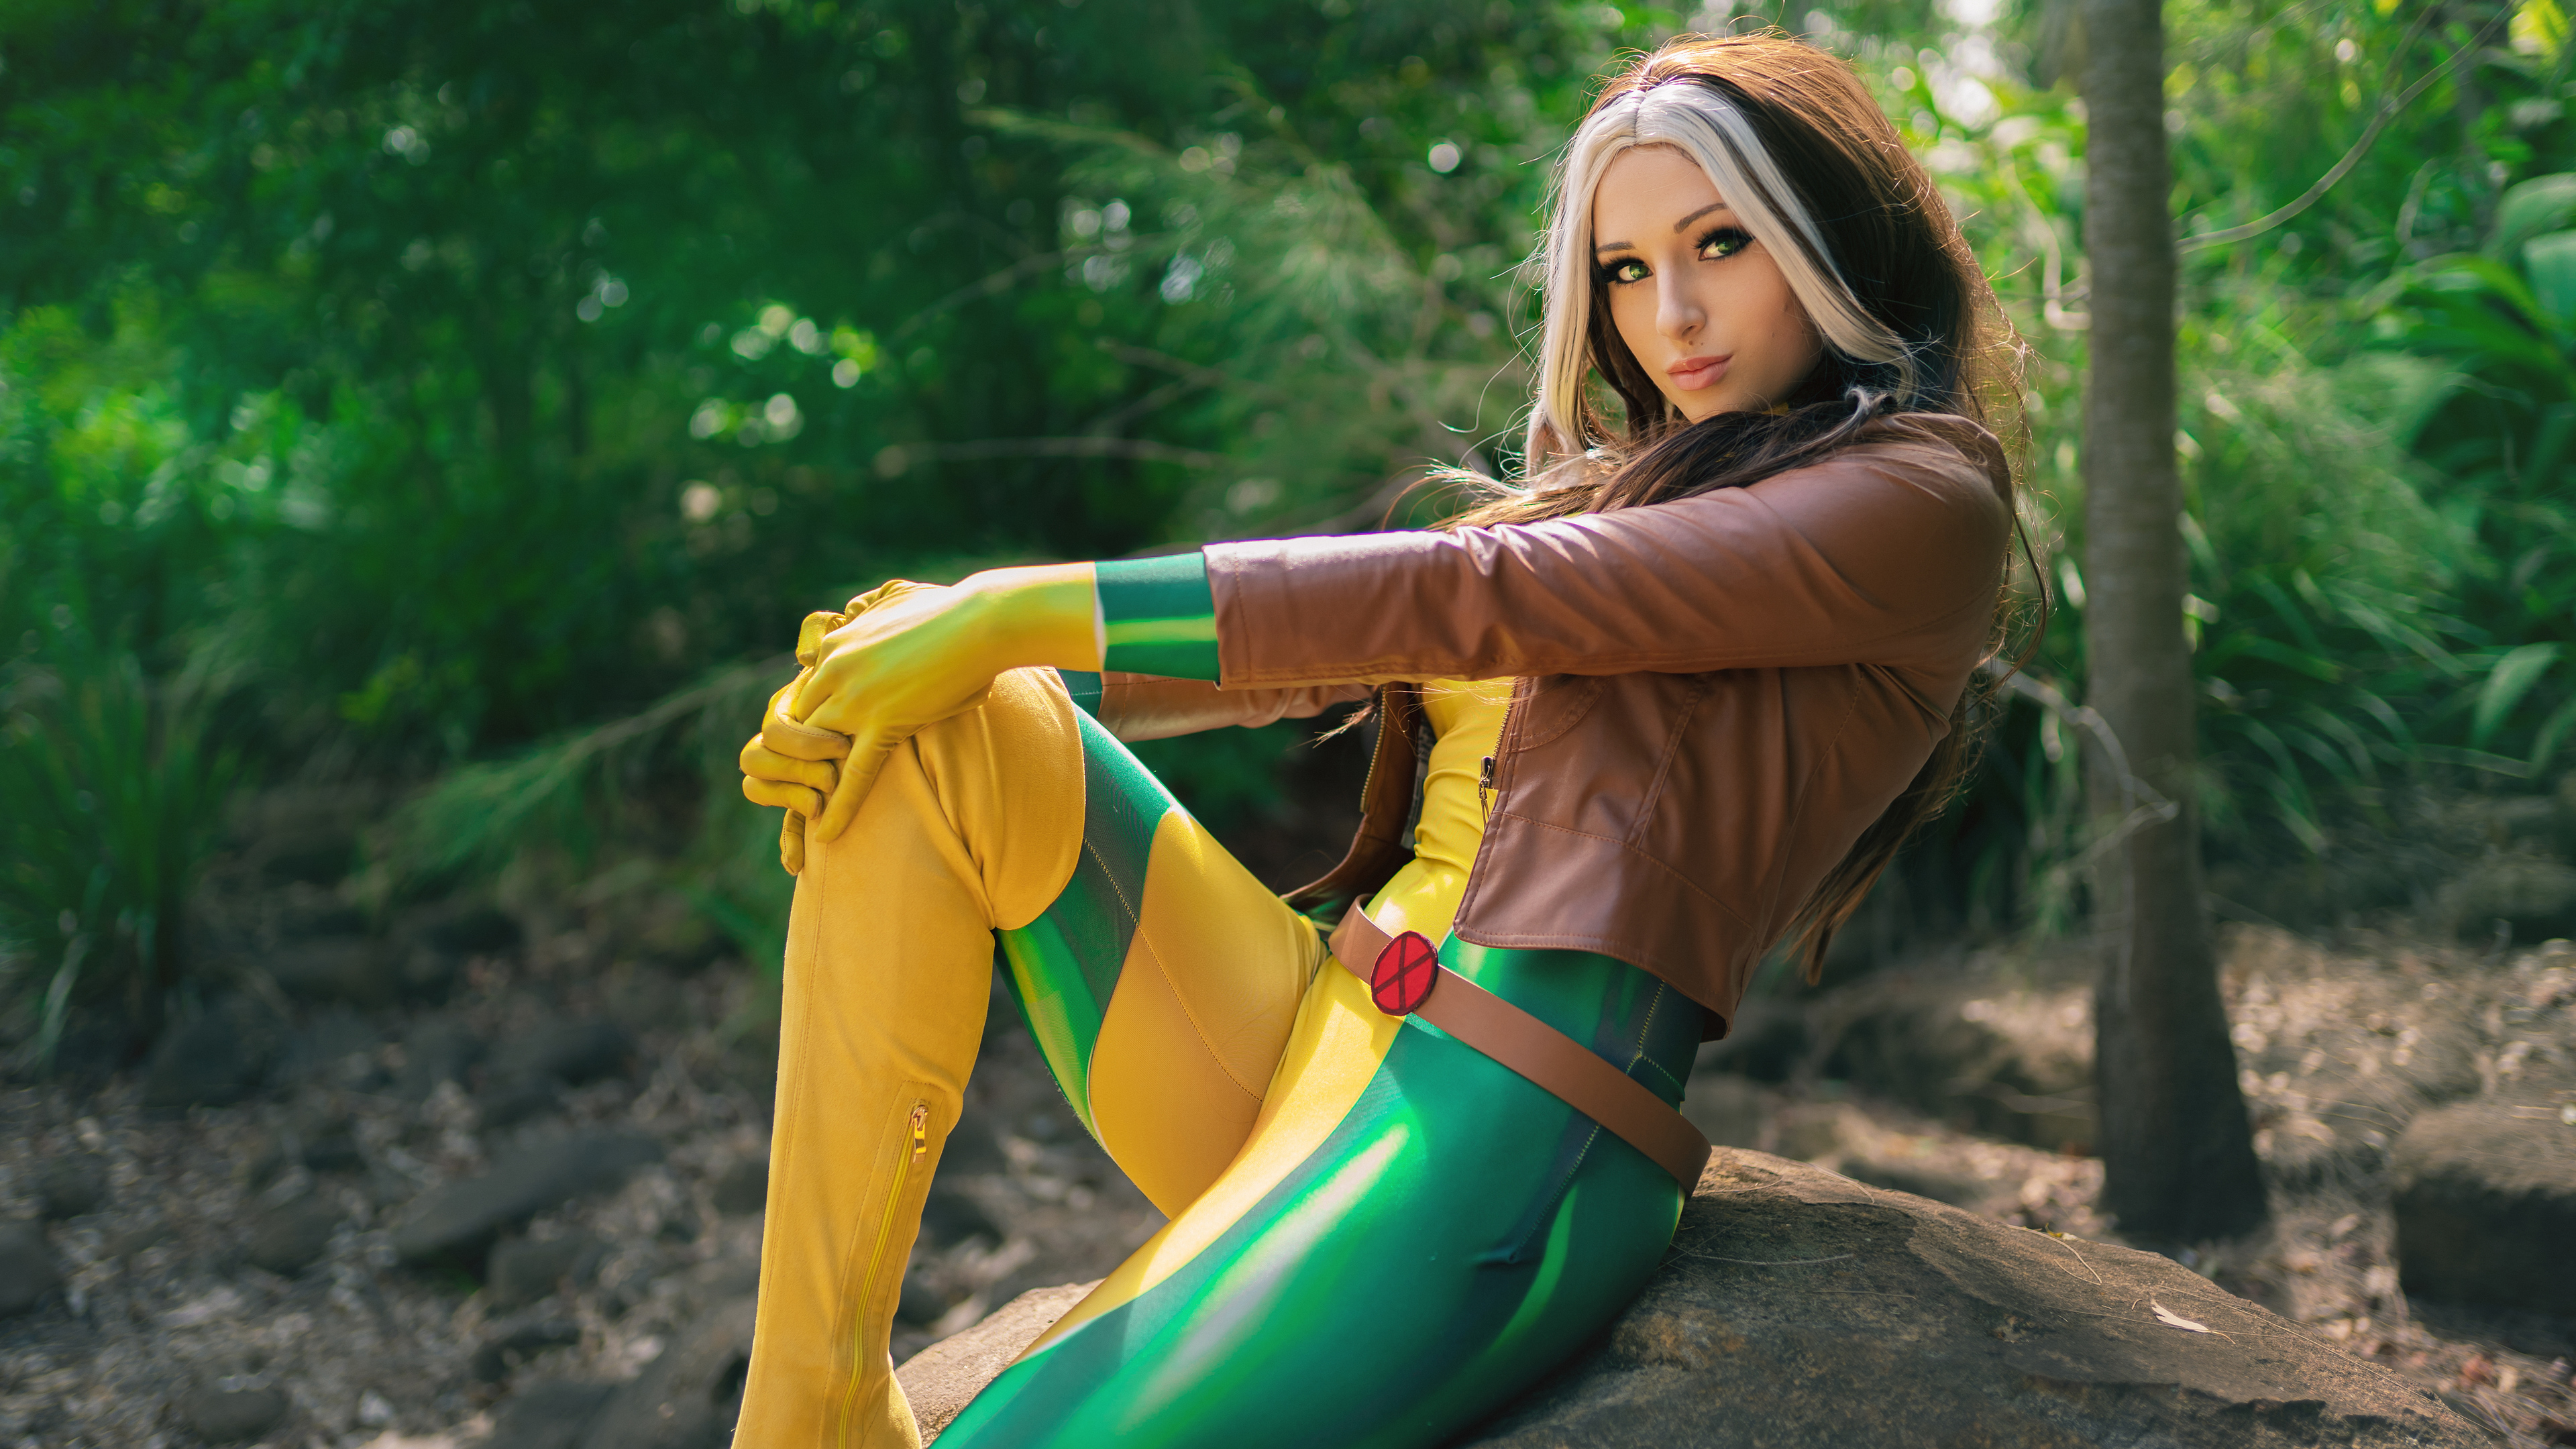 rogue x men cosplay 4k 1557260025 - Rogue X Men Cosplay 4k - x men wallpapers, superheroes wallpapers, rogue wallpapers, hd-wallpapers, deviantart wallpapers, cosplay wallpapers, 5k wallpapers, 4k-wallpapers